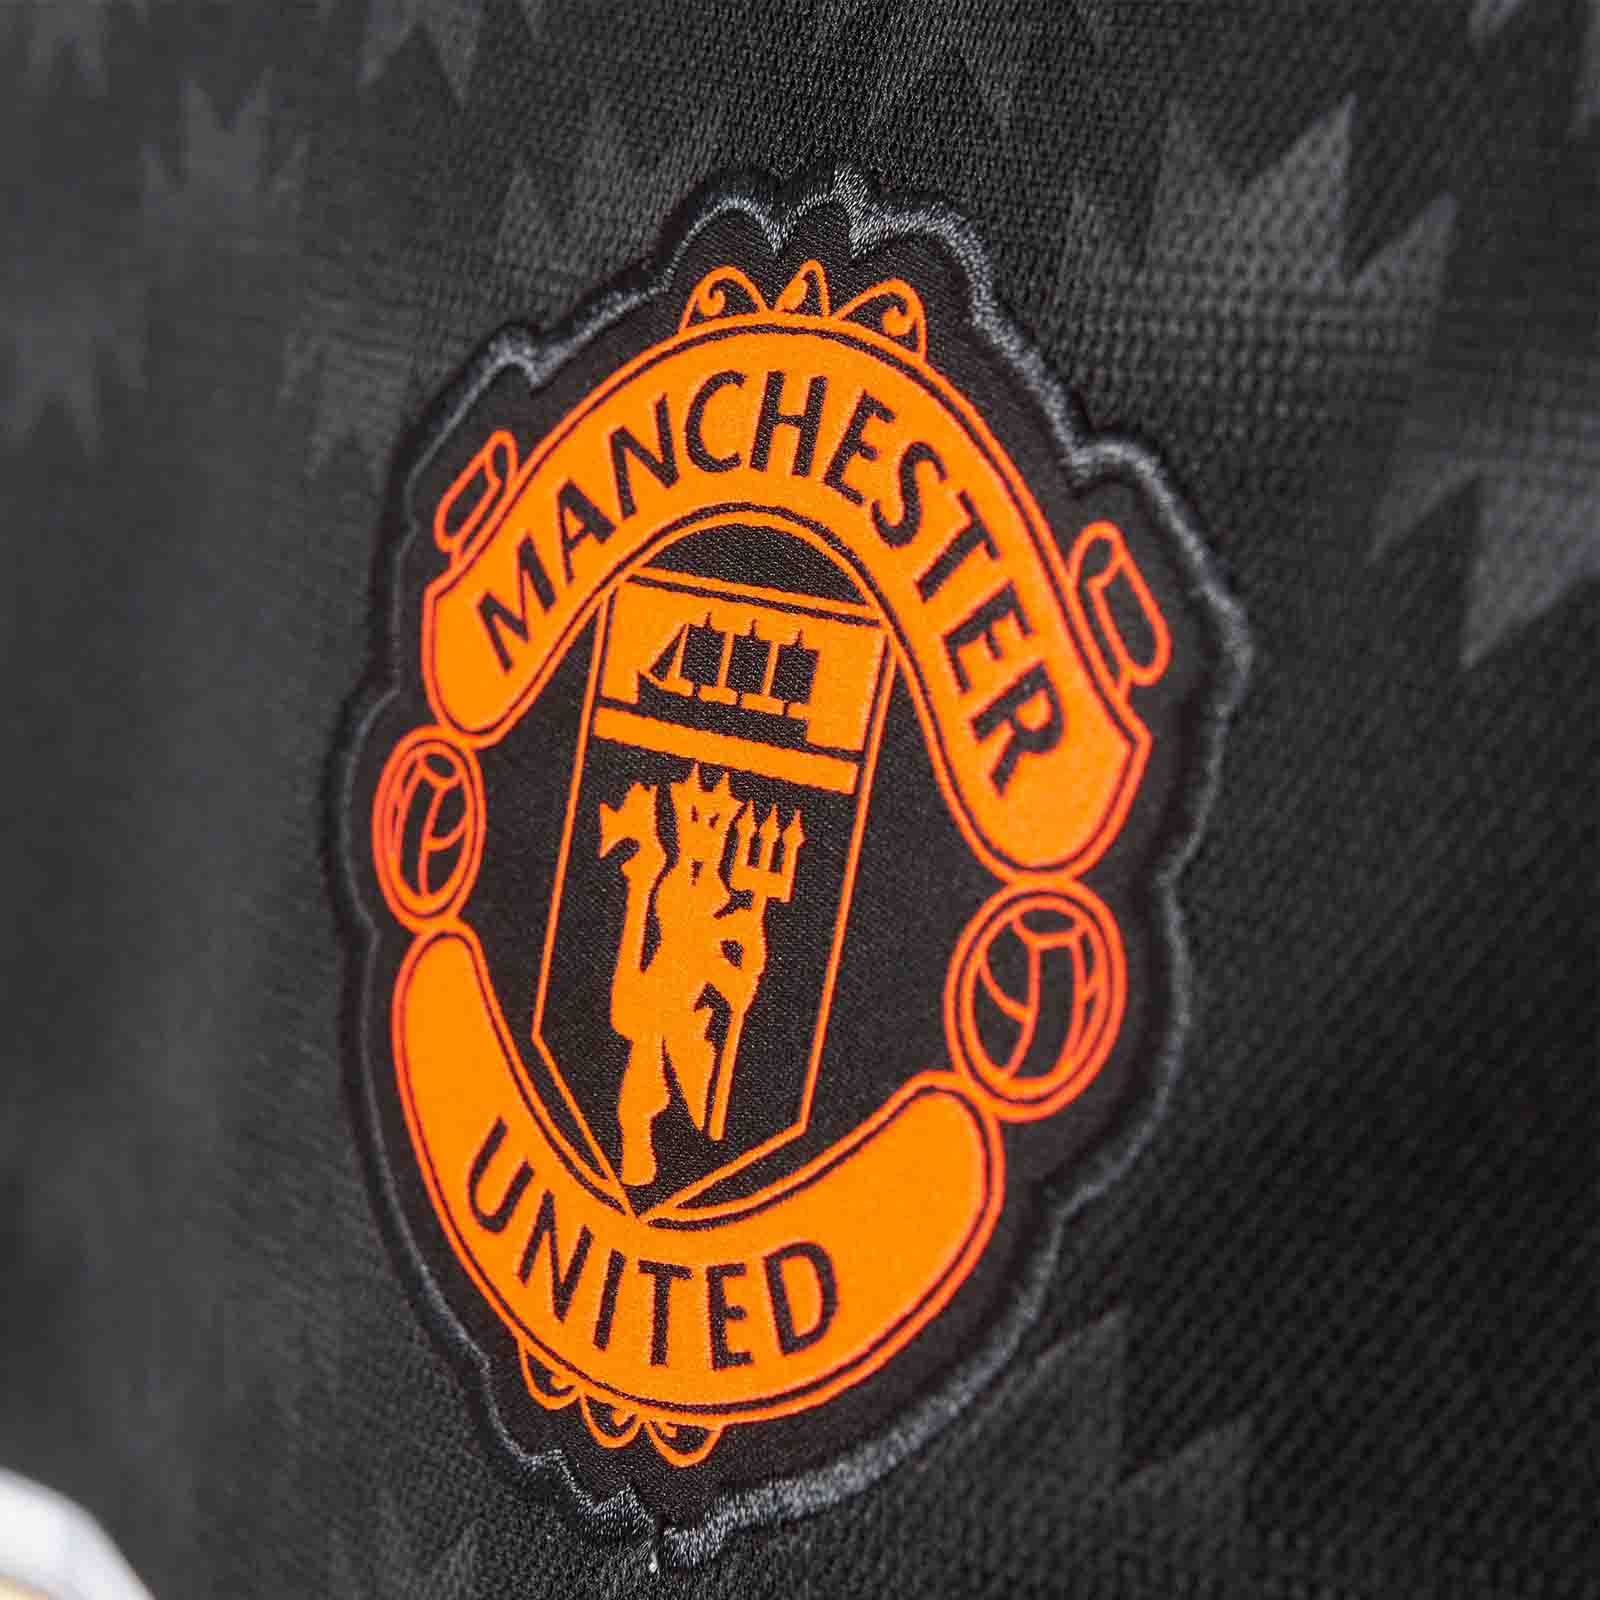 manchester-united-Google-Search-wallpaper-wpc5806971